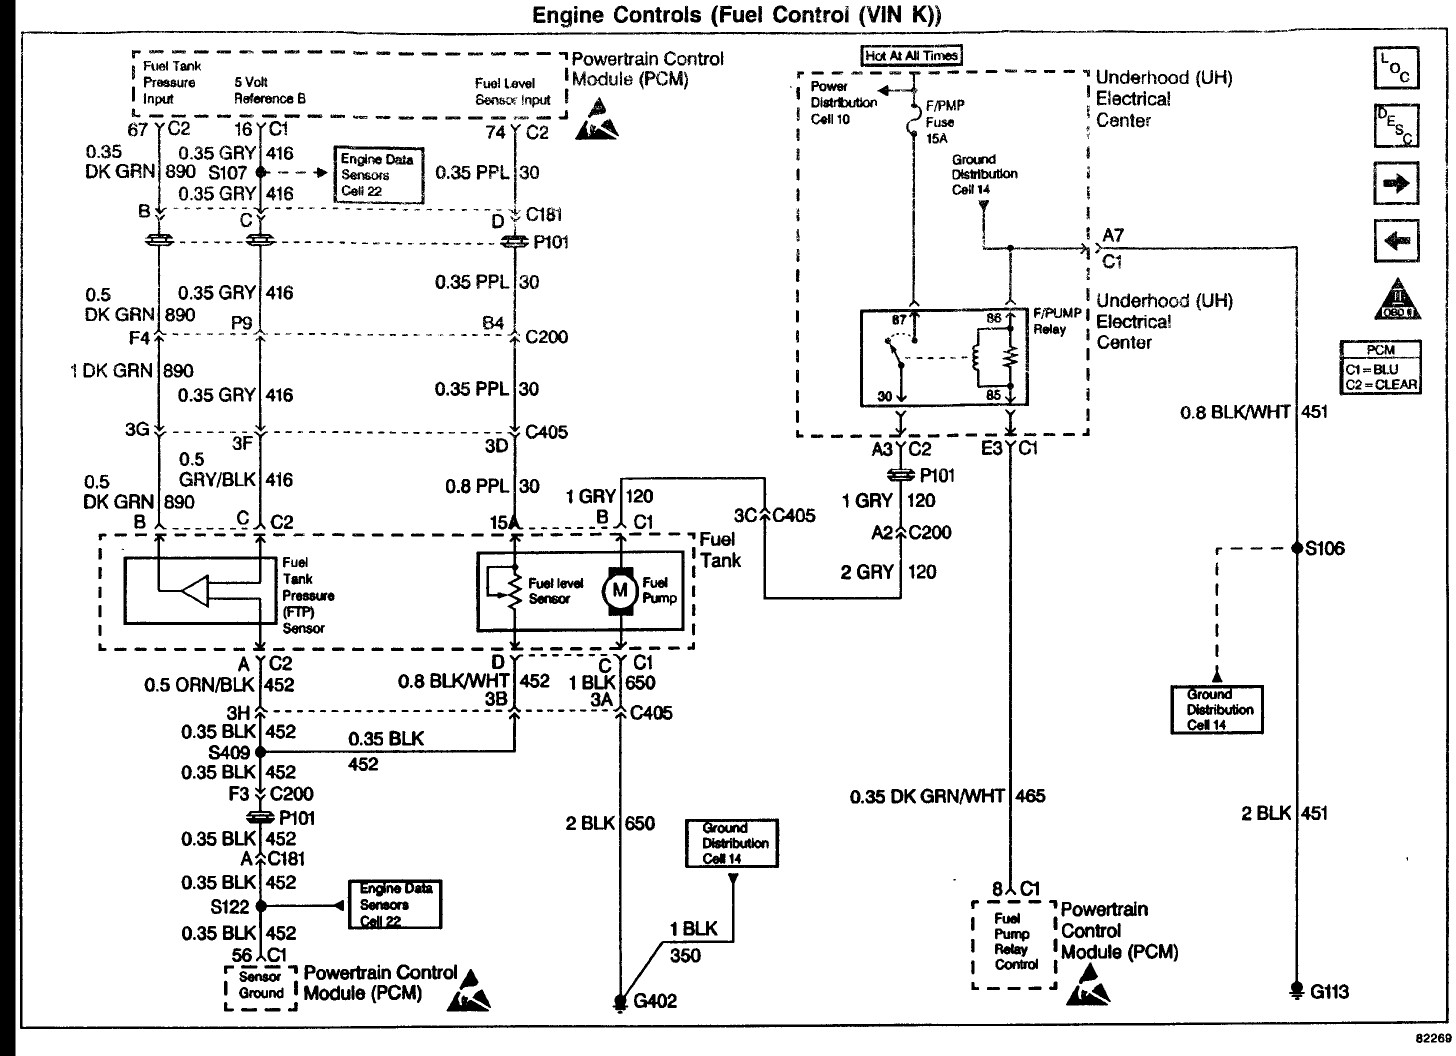 wiring diagram for 2001 buick park avenue schematics wiring diagrams u2022 rh seniorlivinguniversity co 2001 buick park avenue wiring diagram 1996 buick park avenue wiring diagram